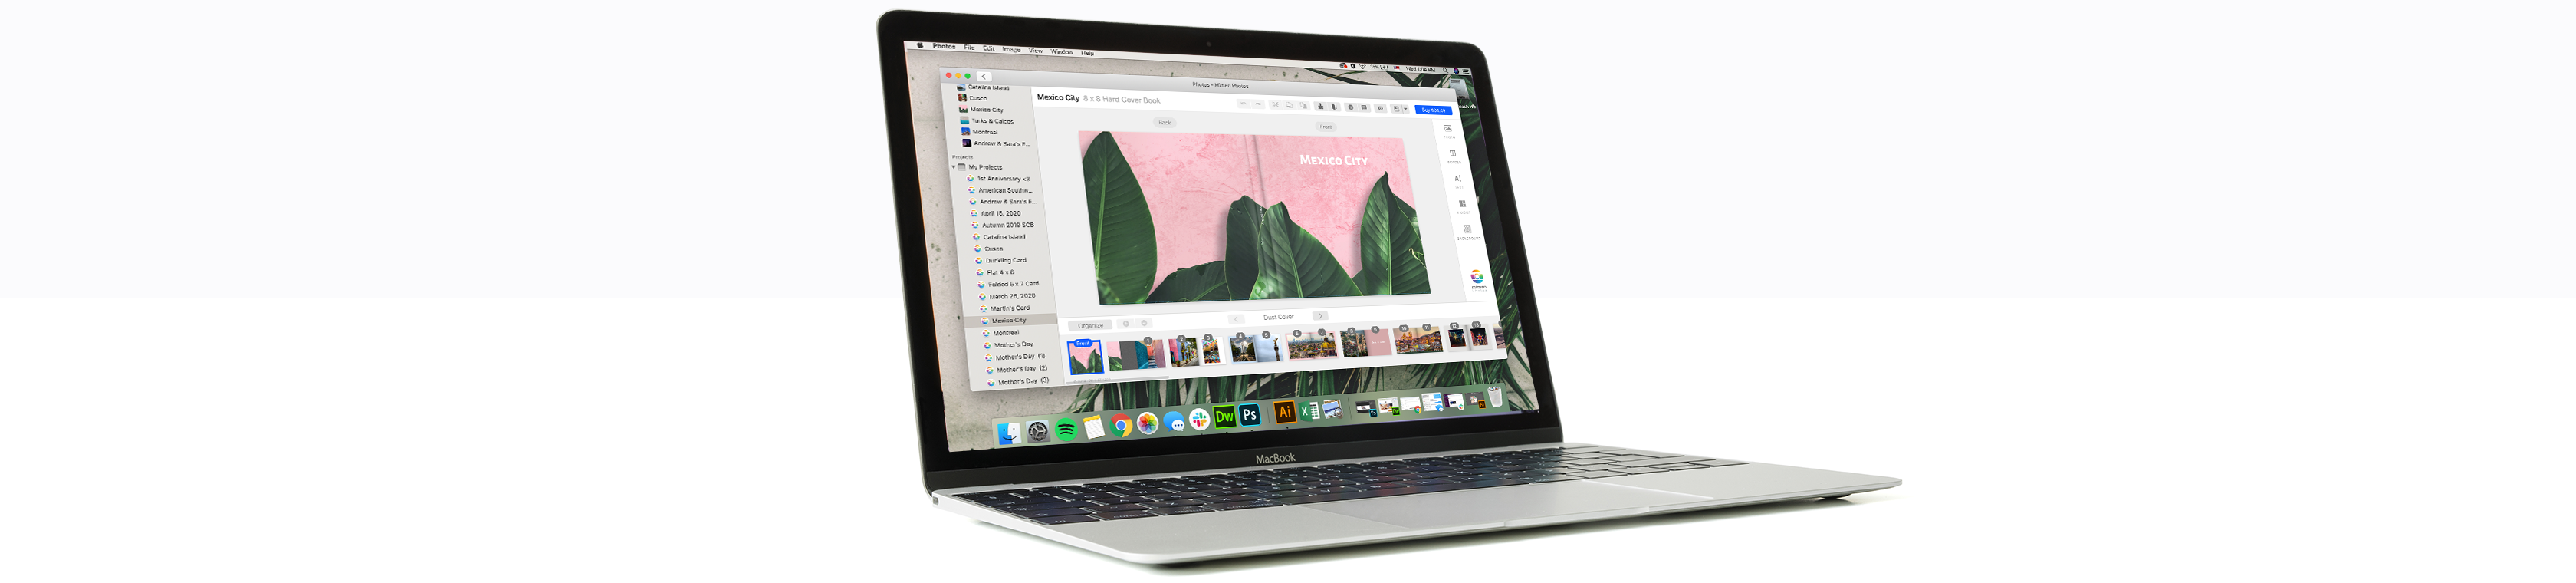 Get started creating printed photo products with Mimeo Photos on your Mac or from any browser